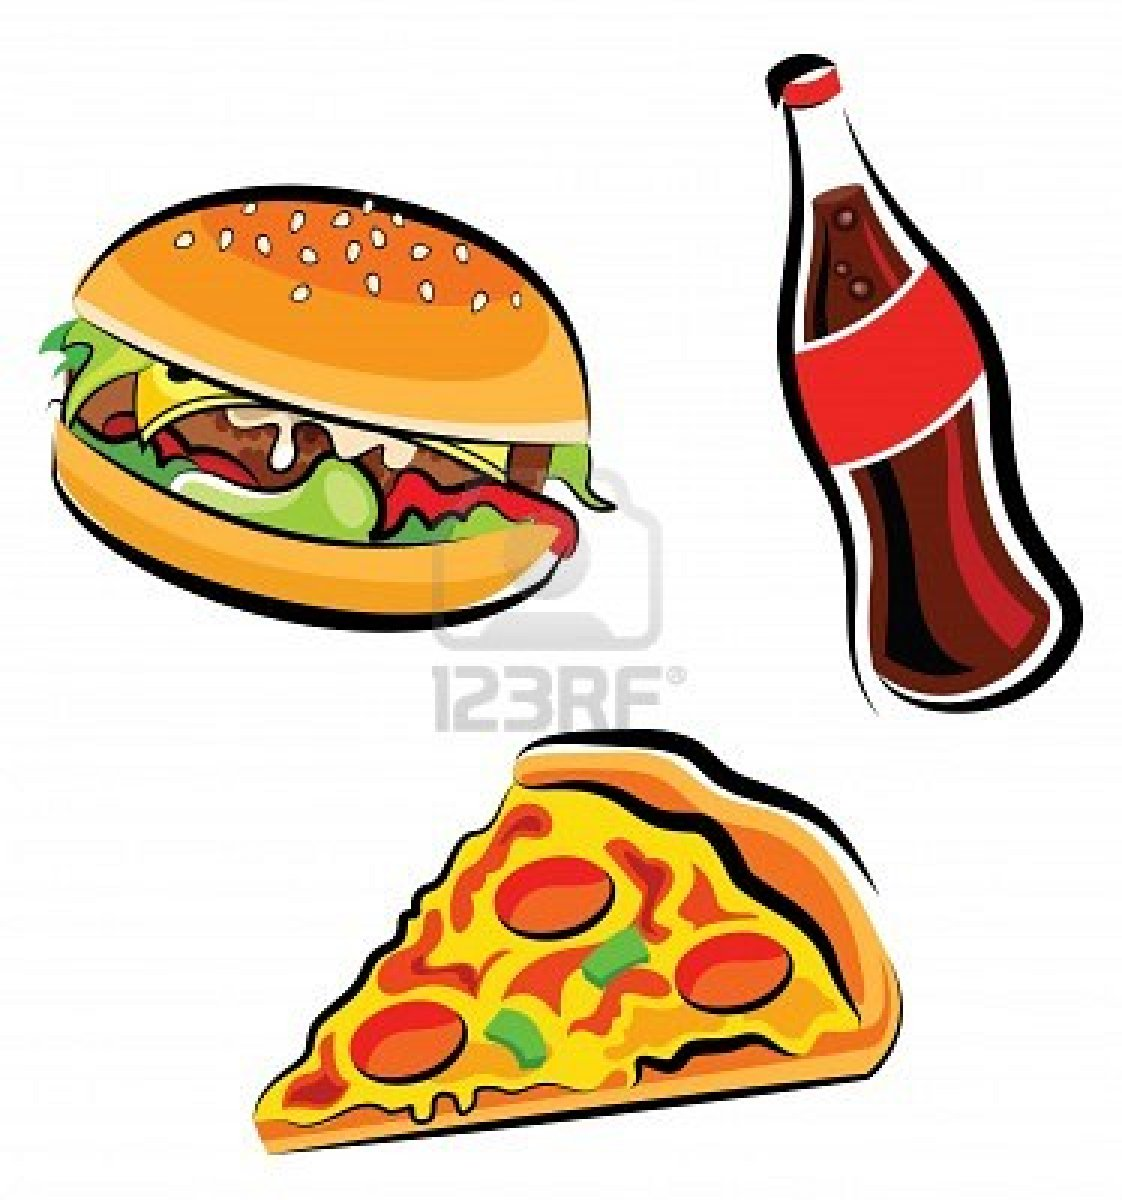 Healthy Foods Clipart | Free download best Healthy Foods Clipart on